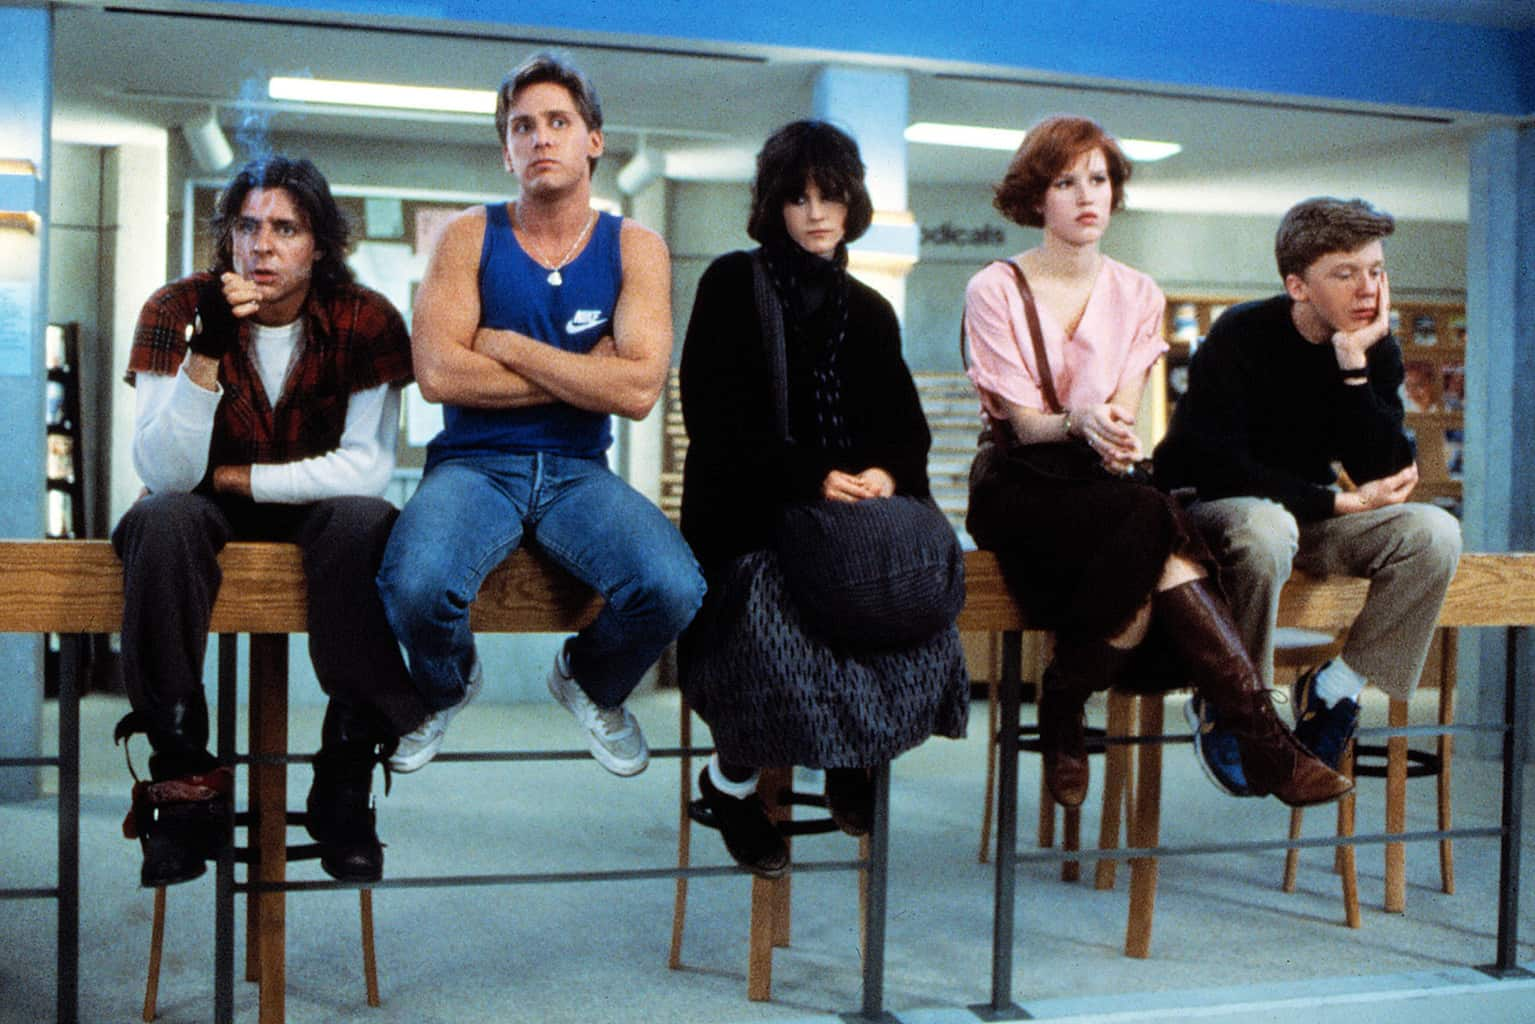 film reviews | movies | features | BRWC Review: The Breakfast Club